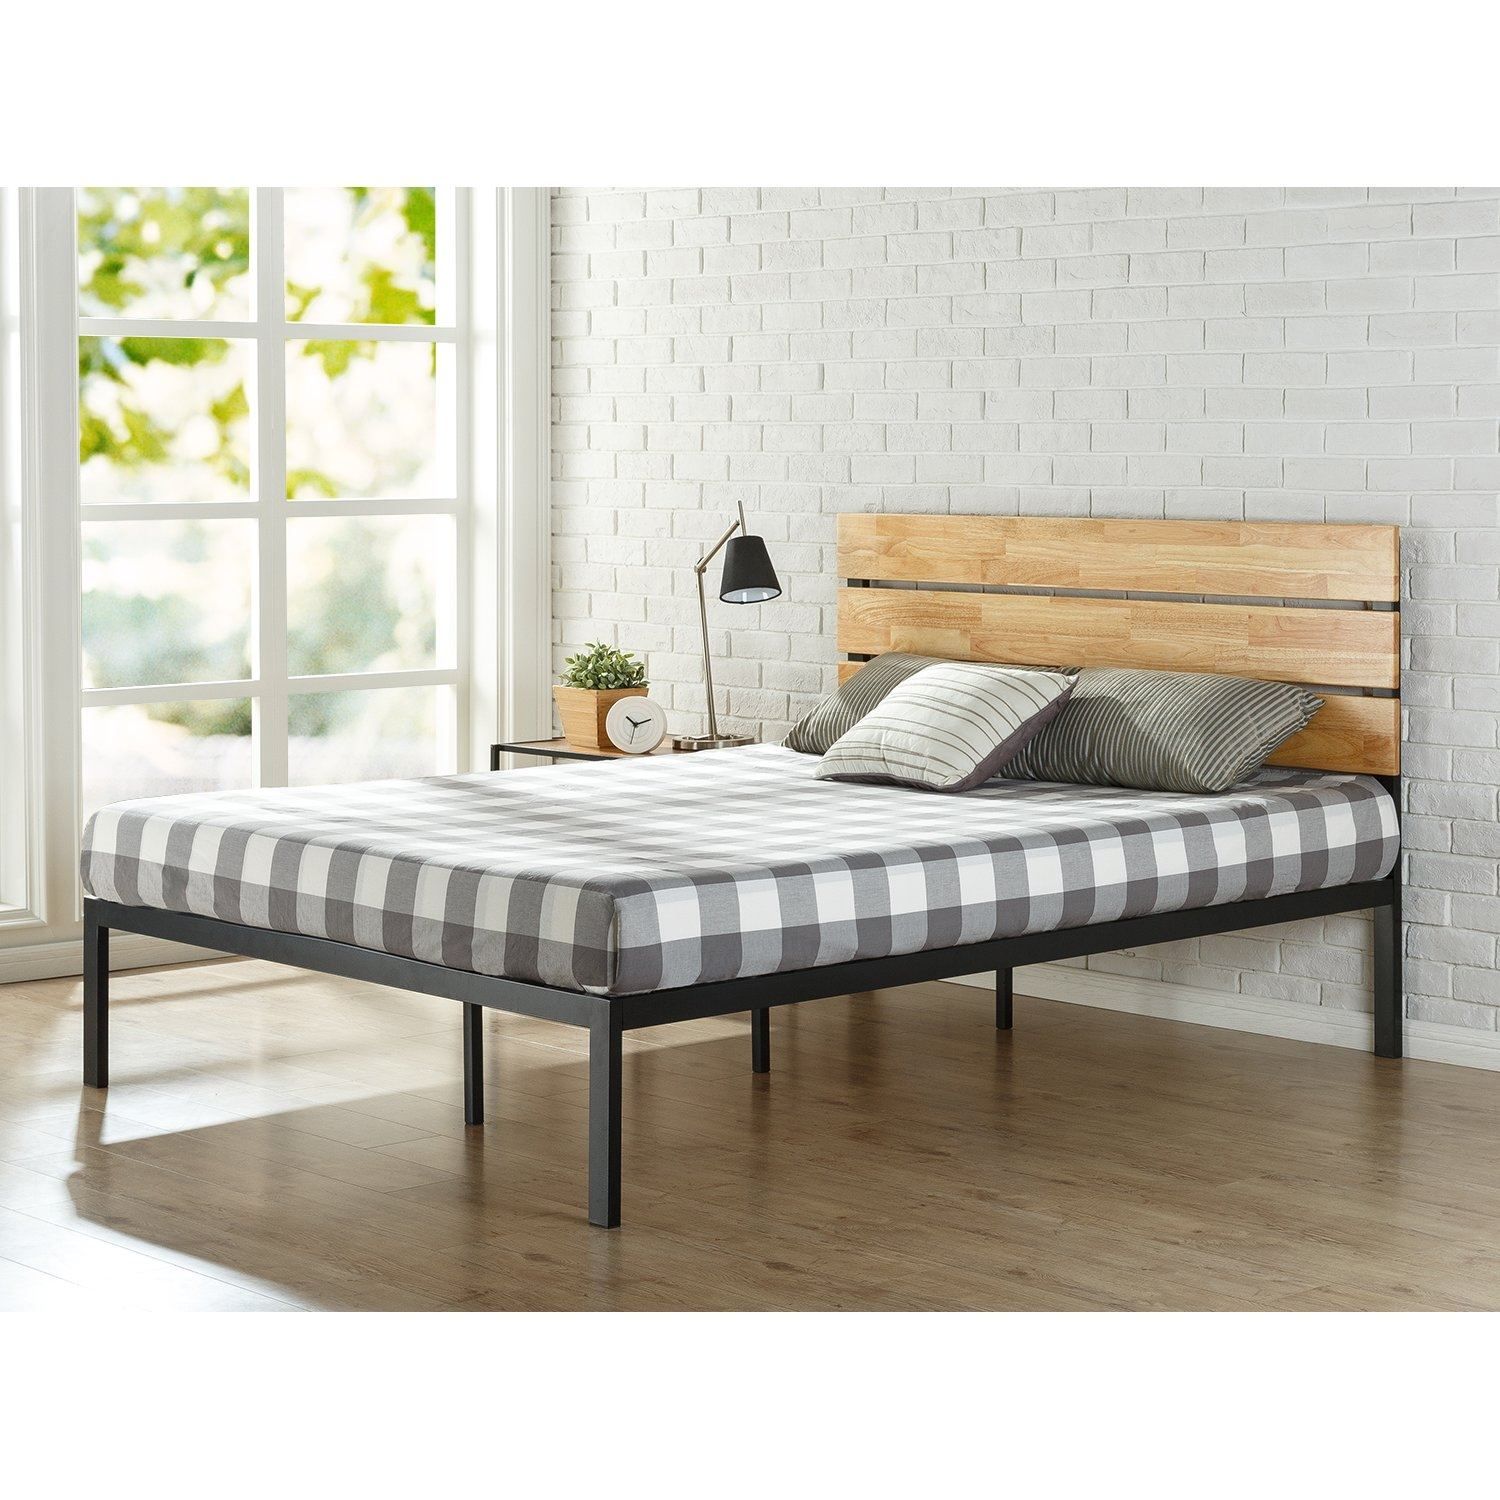 Platform Bed Frame For Latex Mattress